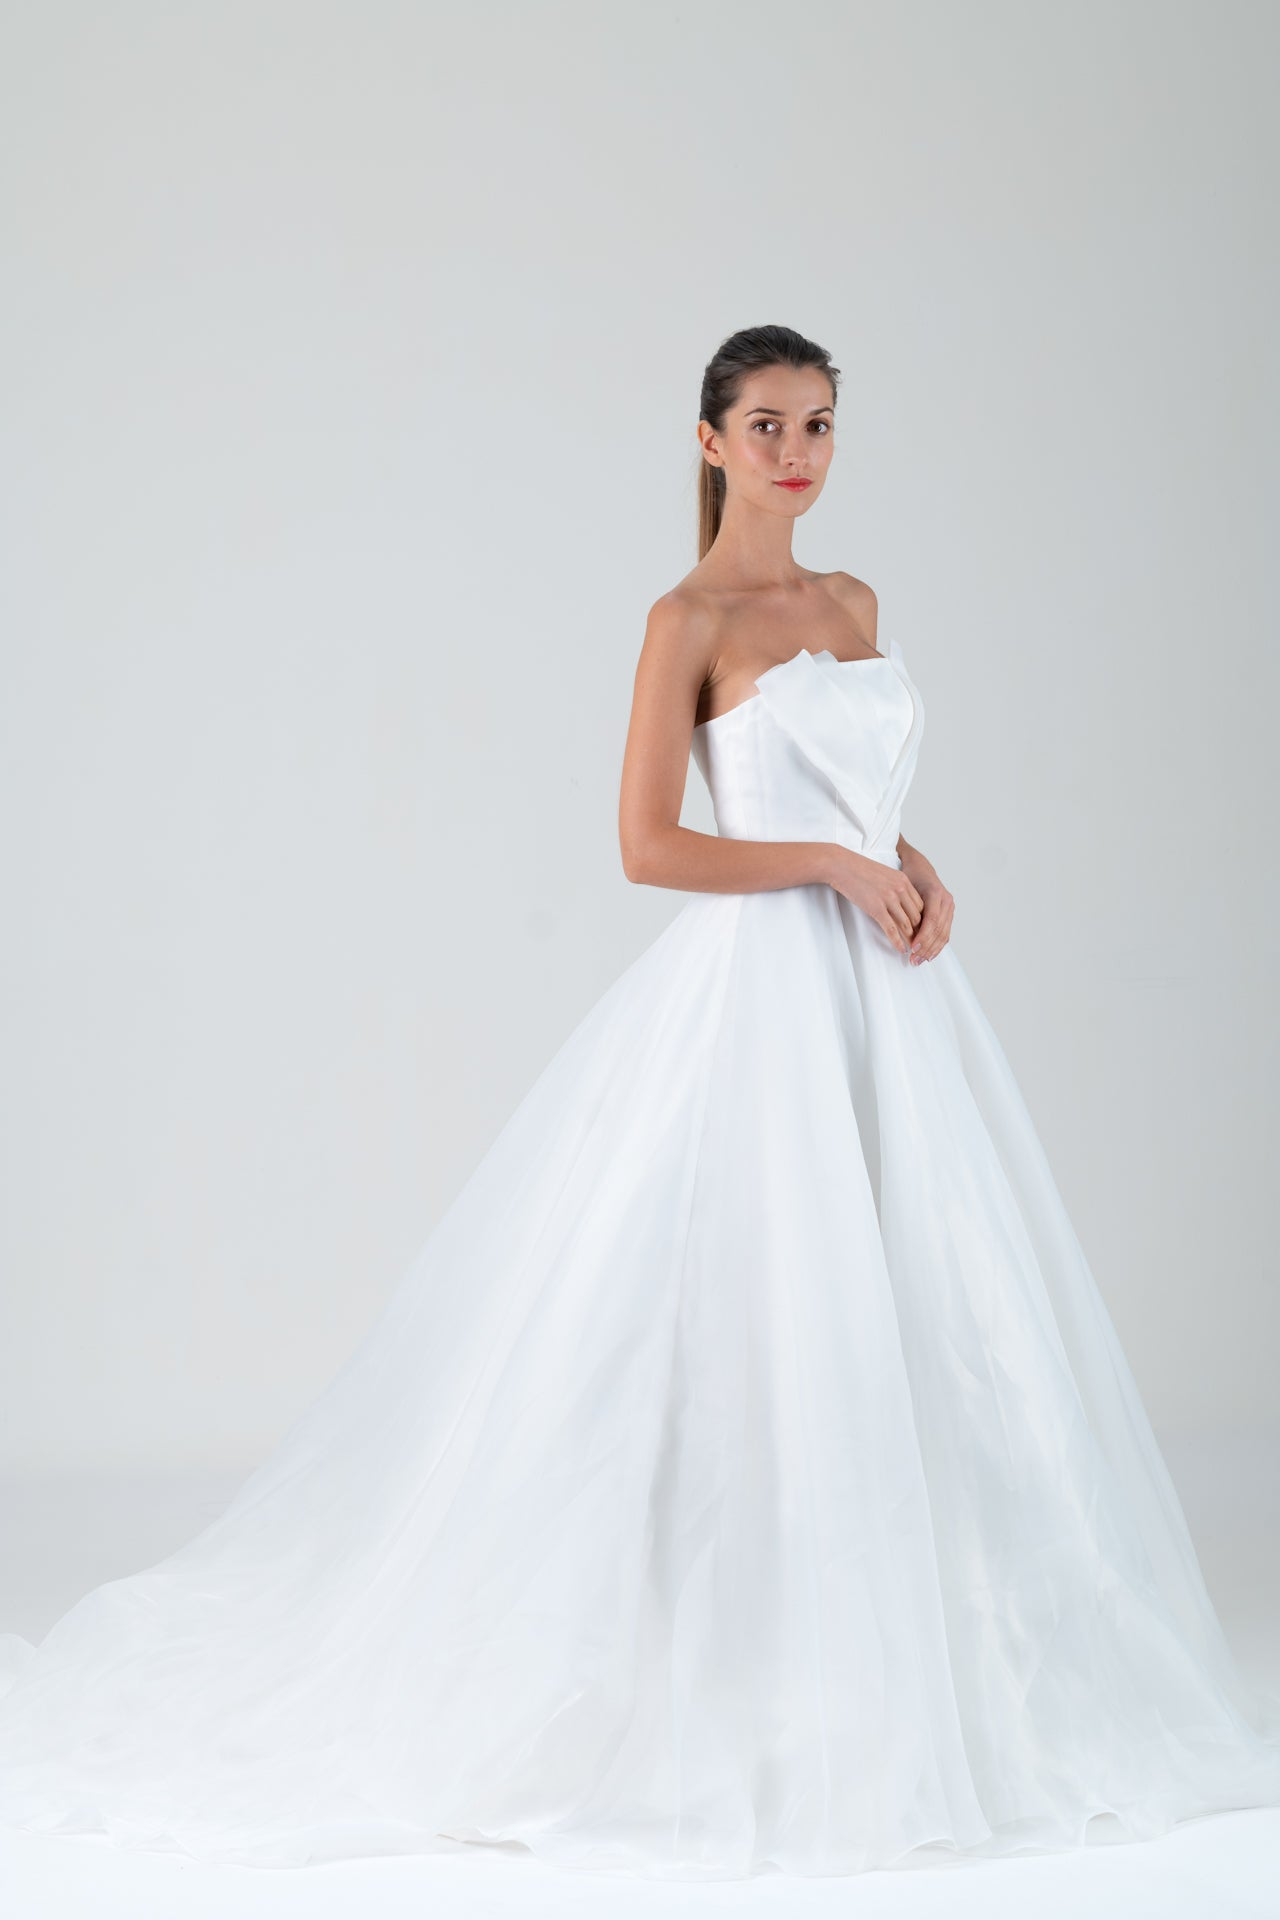 Qipology White Strapless Organza Ballgown Bridal Gown